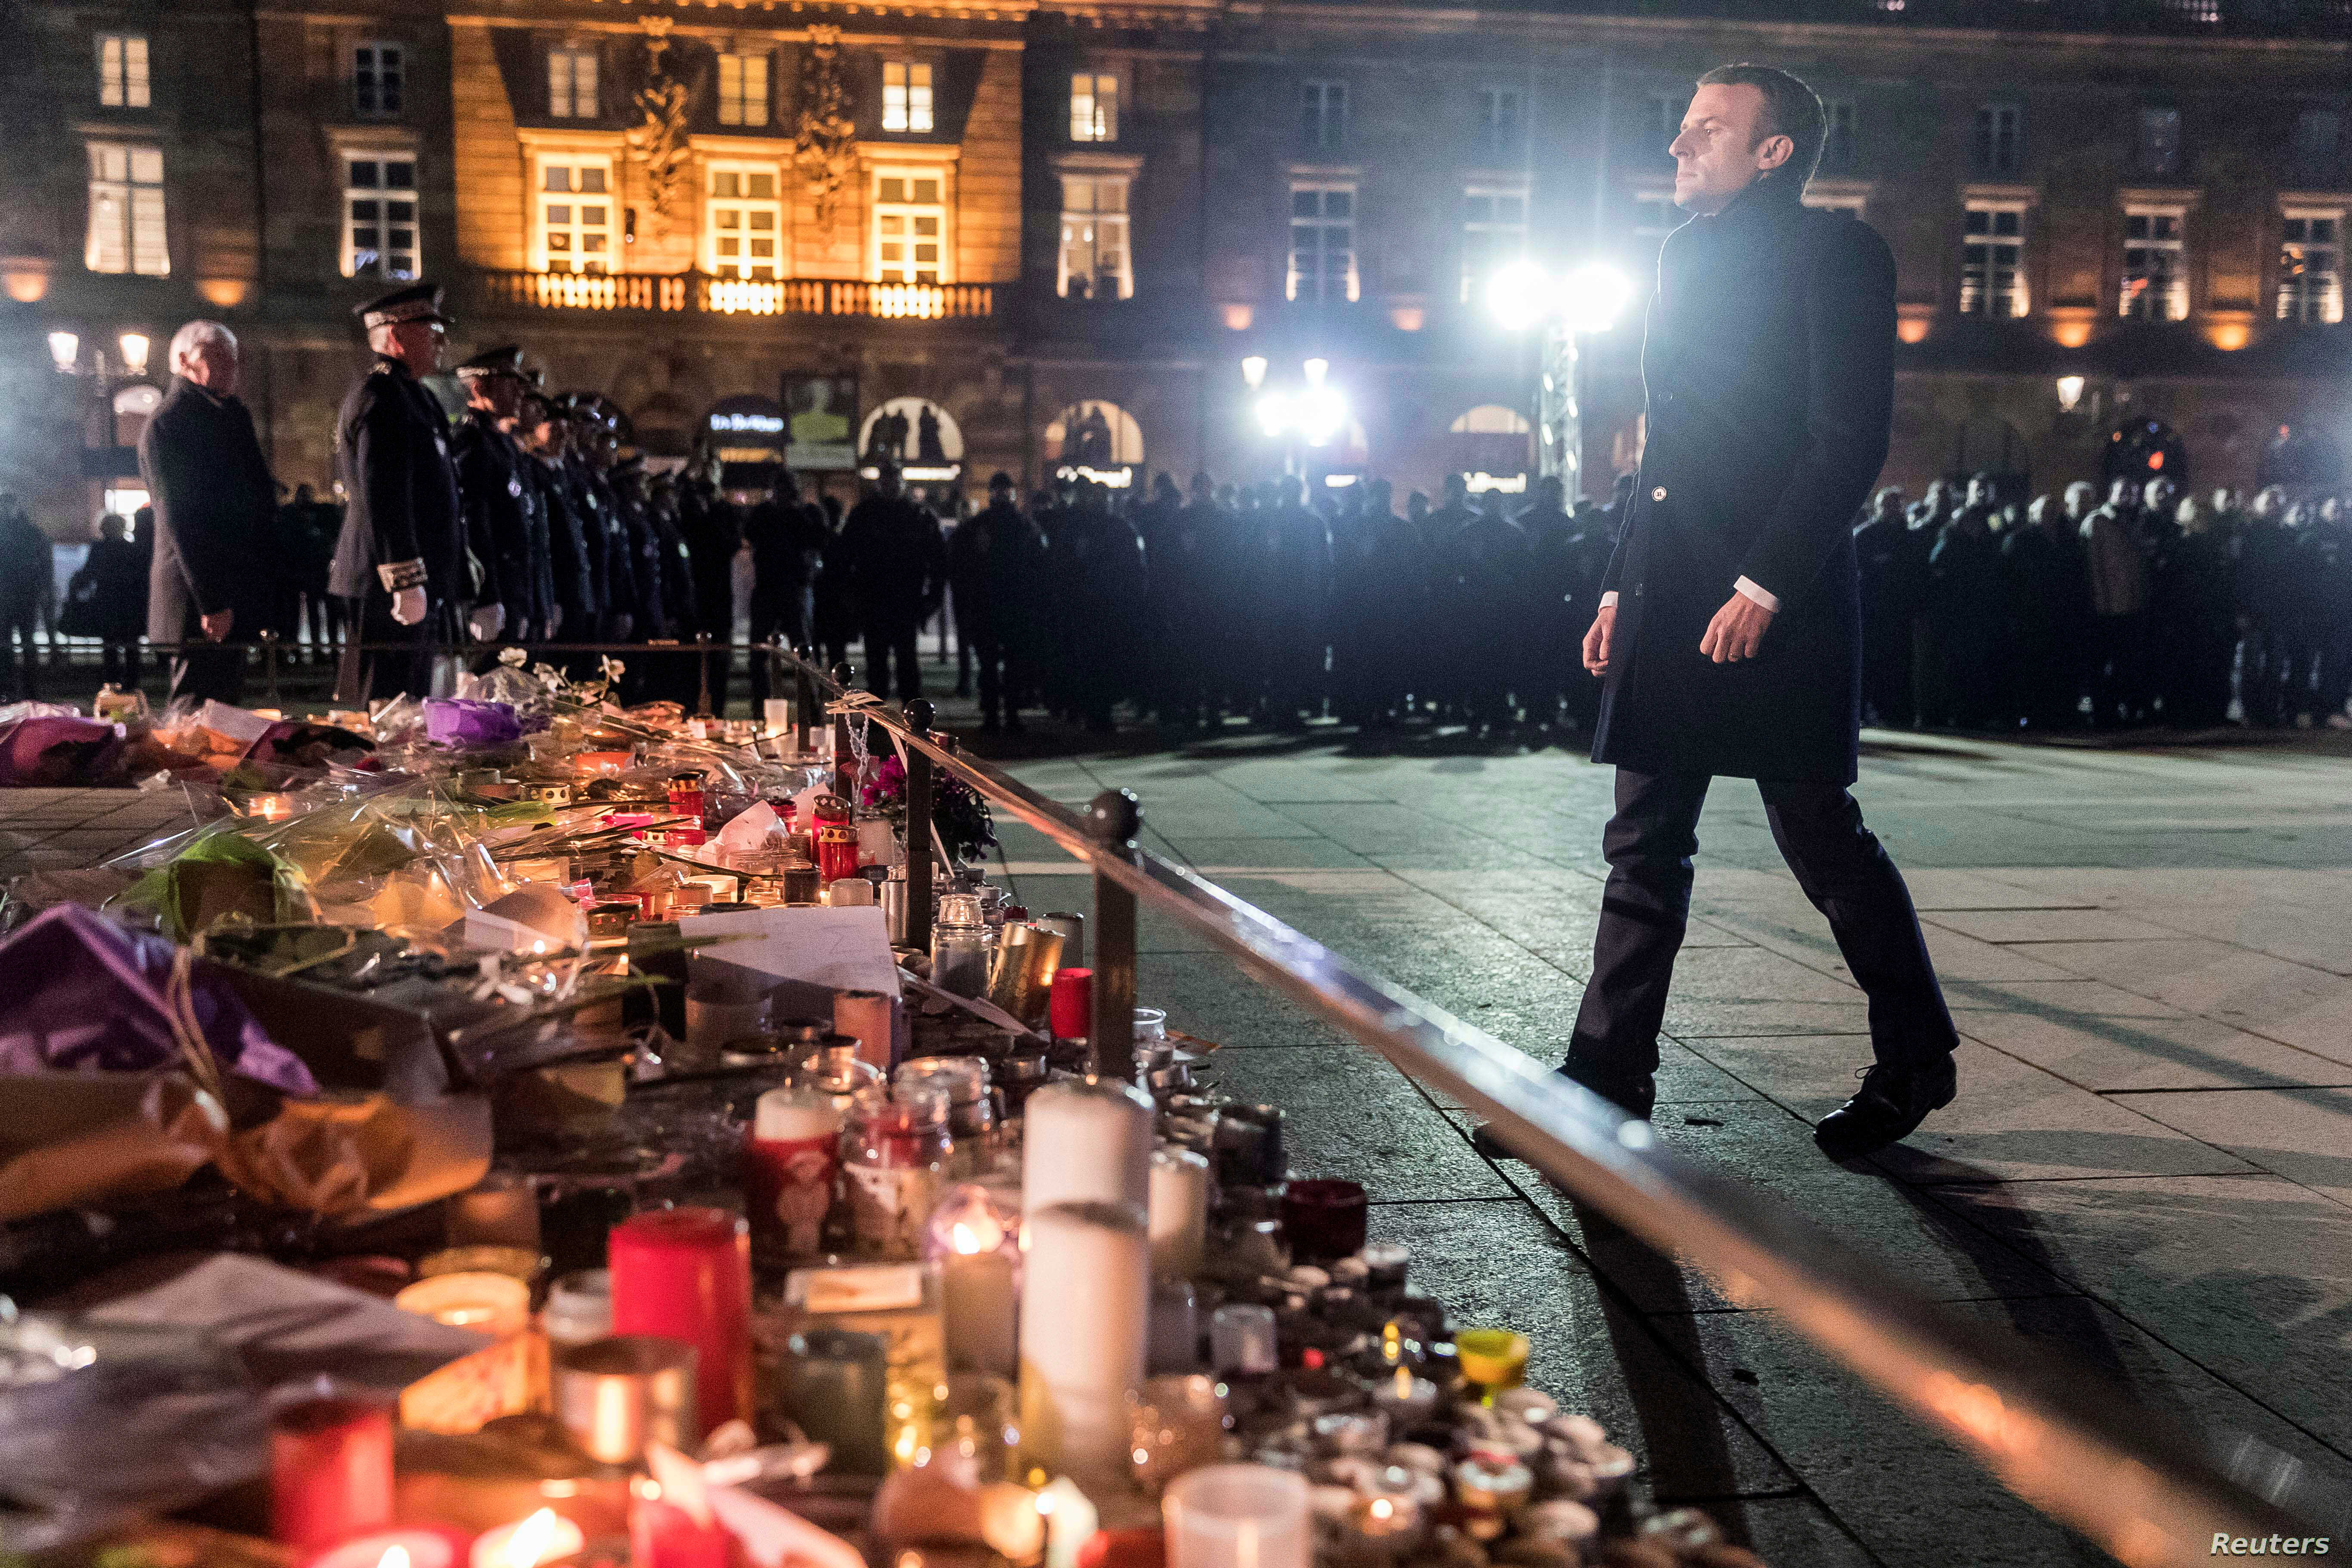 French President Emmanuel Macron pays homage to the victims of the attack, at a monument near the Christmas market in Strasbourg, France, Dec. 14, 2018.